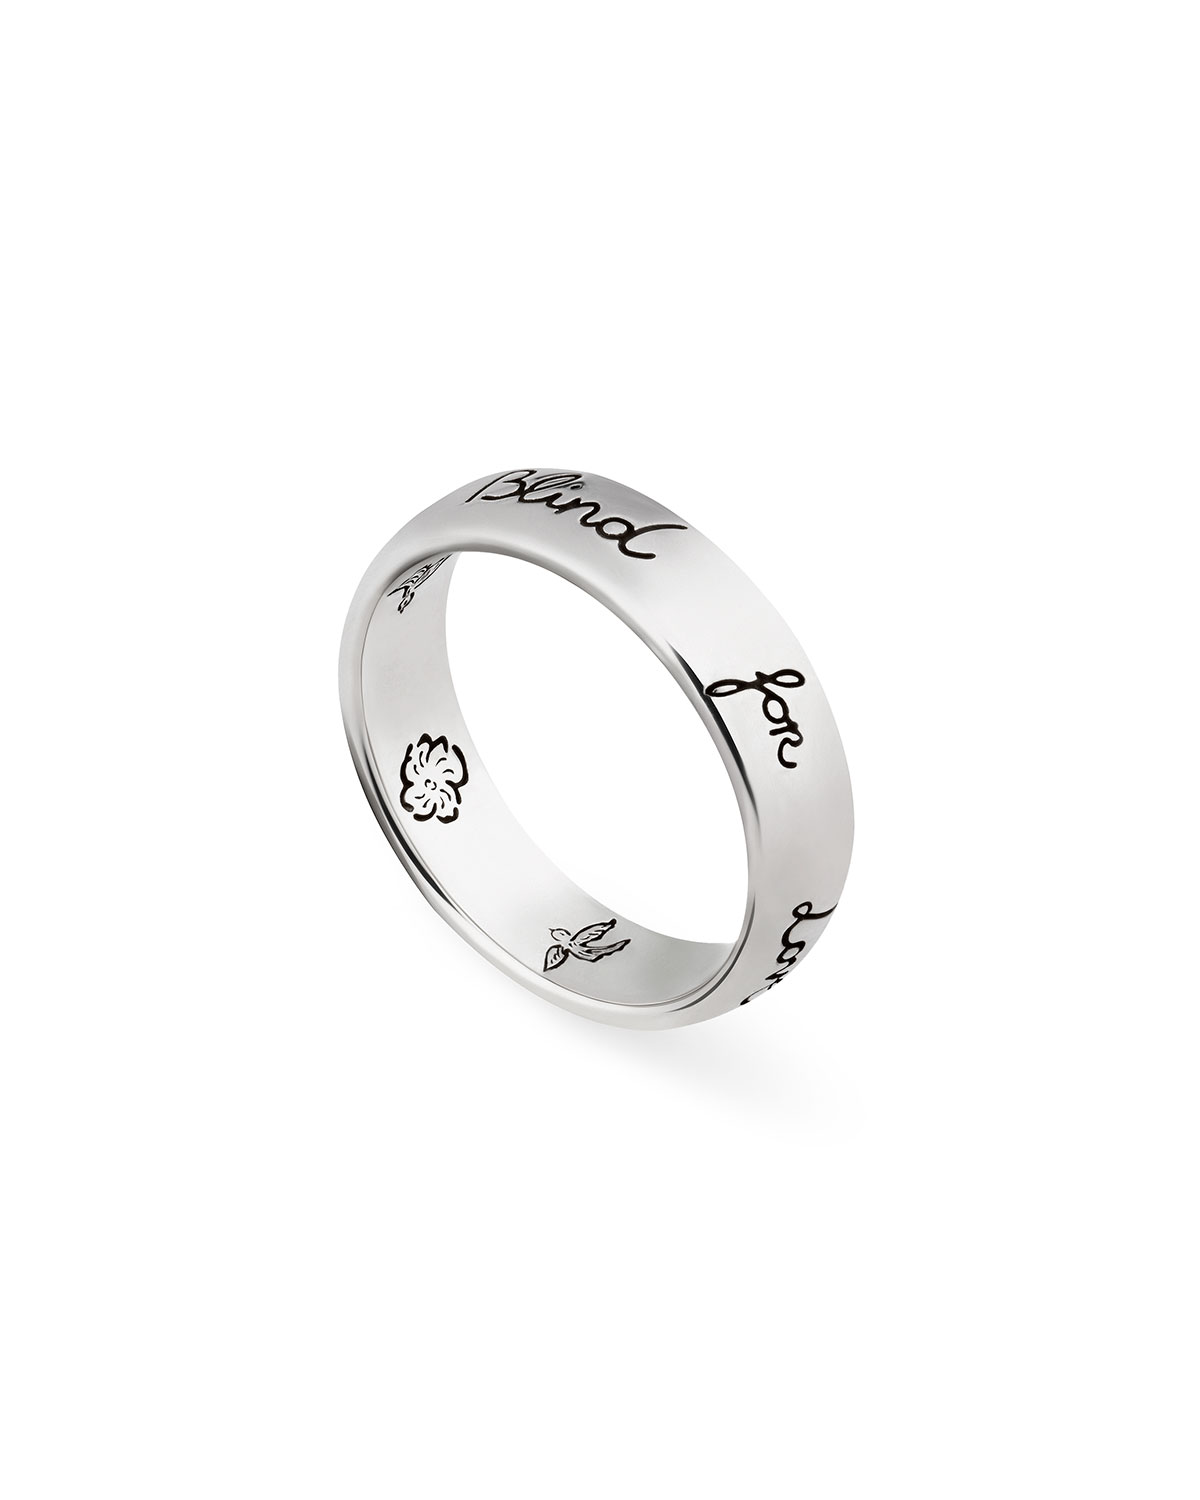 Blind for Love 5mm Sterling Silver Band Ring